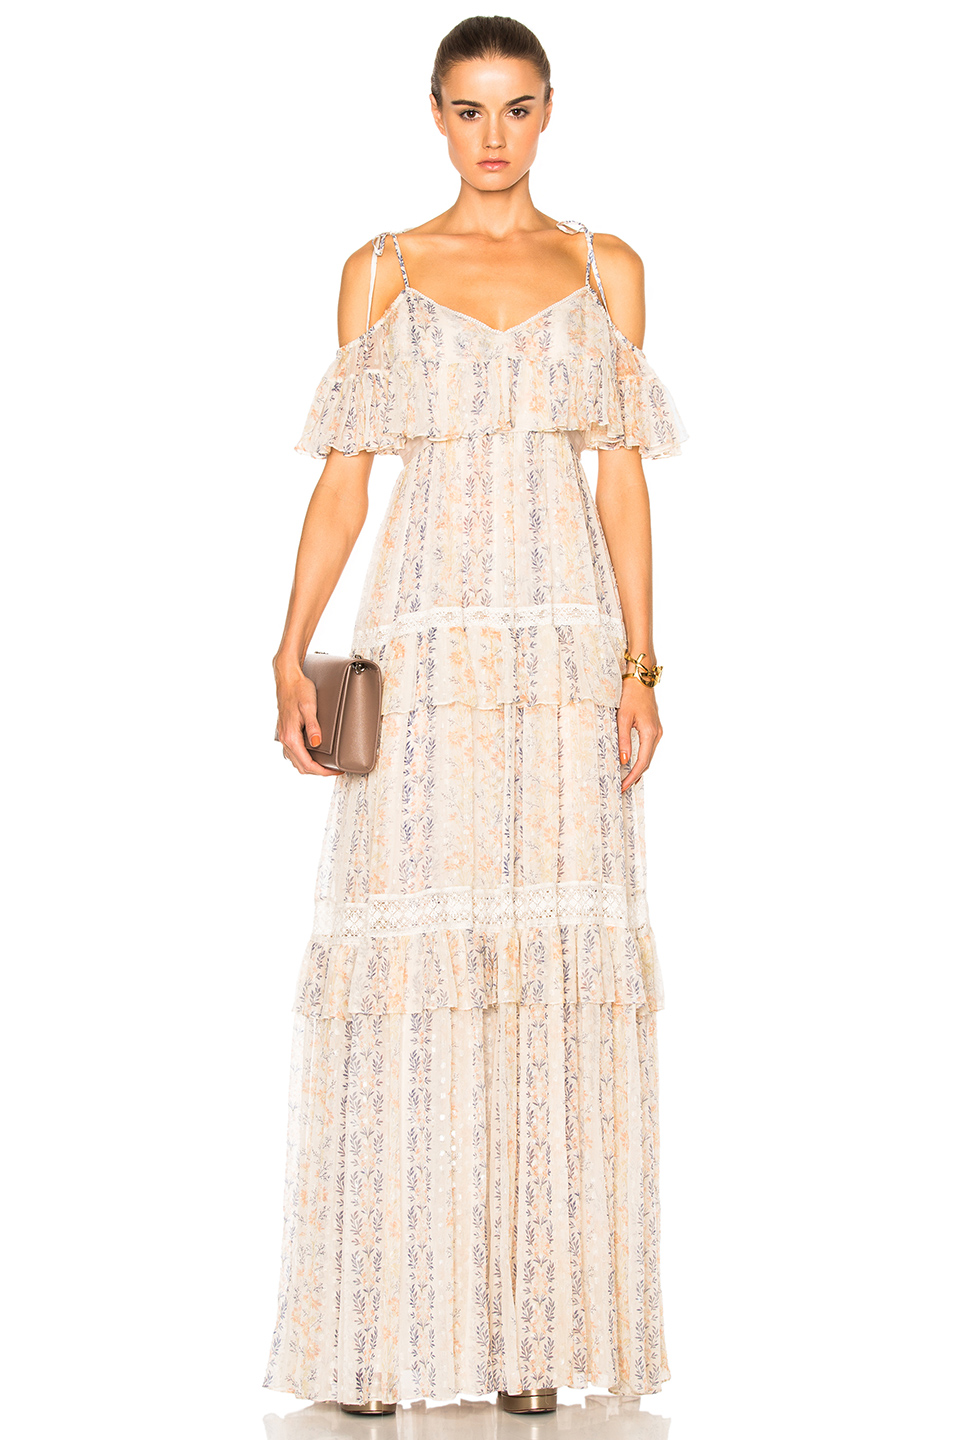 Needle & Thread Floral Stripe Maxi Dress in Floral,Neutrals